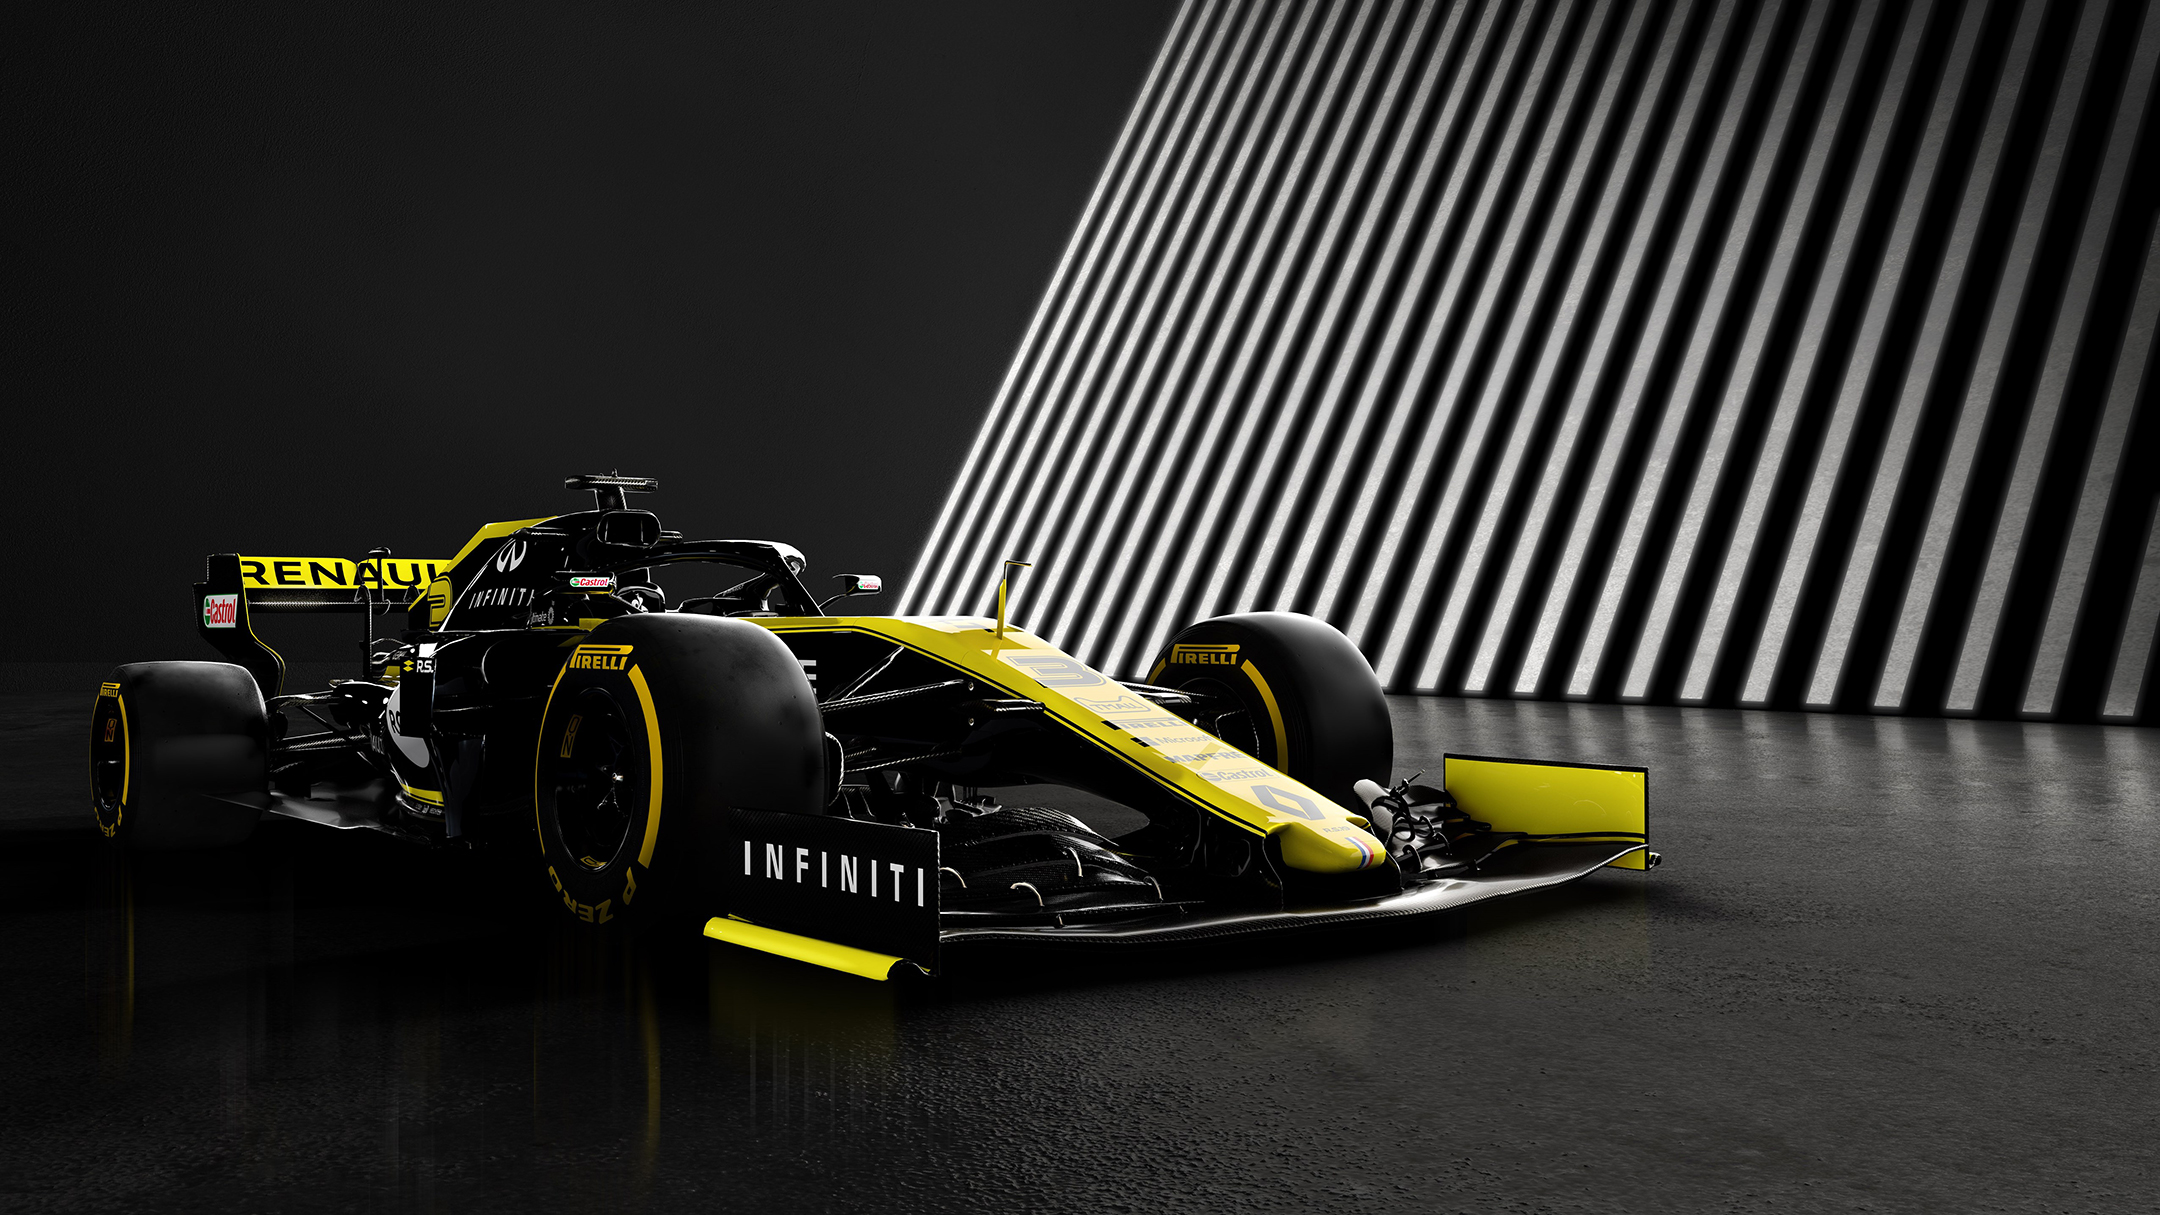 F1 2019 - RENAULT F1 TEAM R.S.19 - front wing / aileron avant